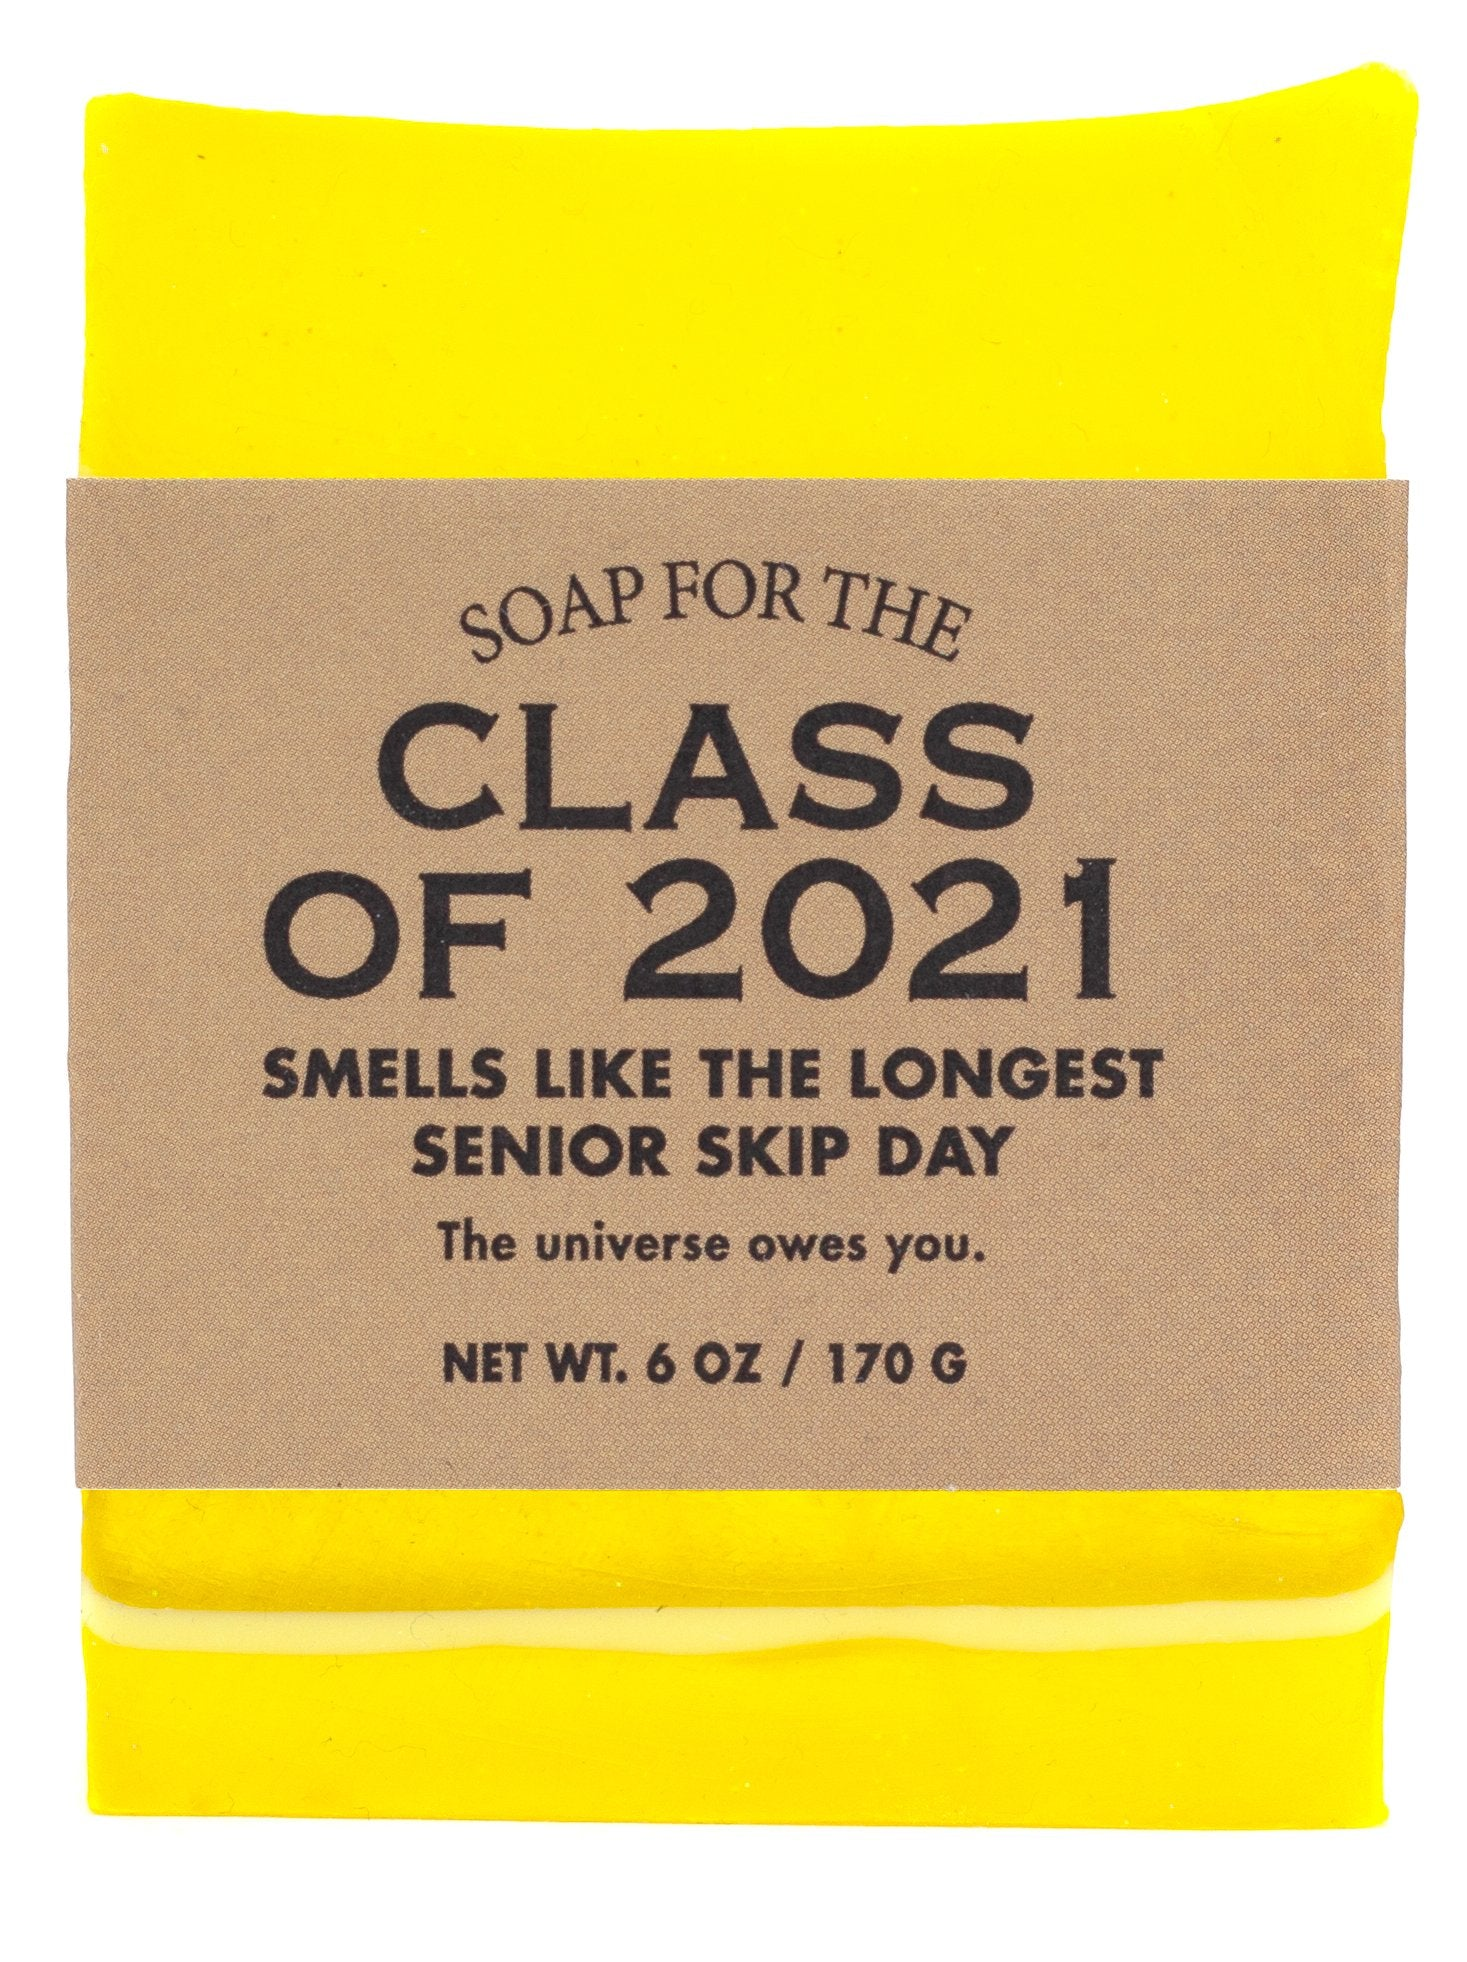 Soap for Class of 2021 - Heart of the Home PA